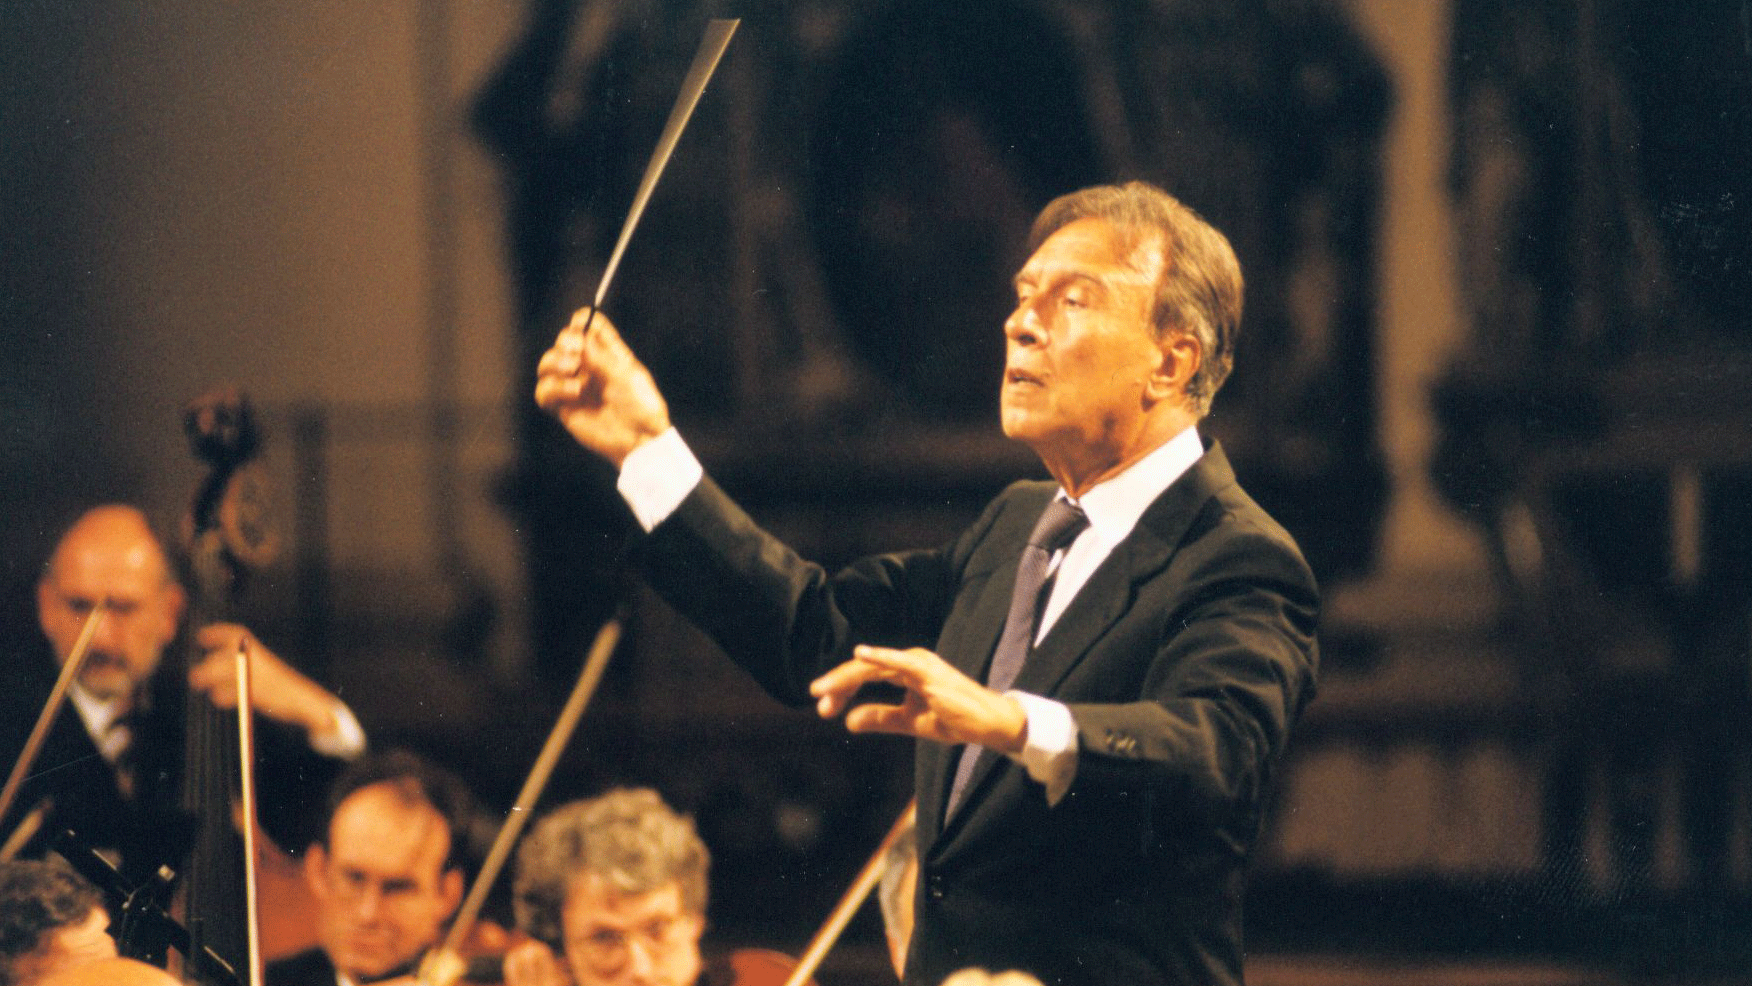 Claudio Abbado conducts Mozart's Requiem